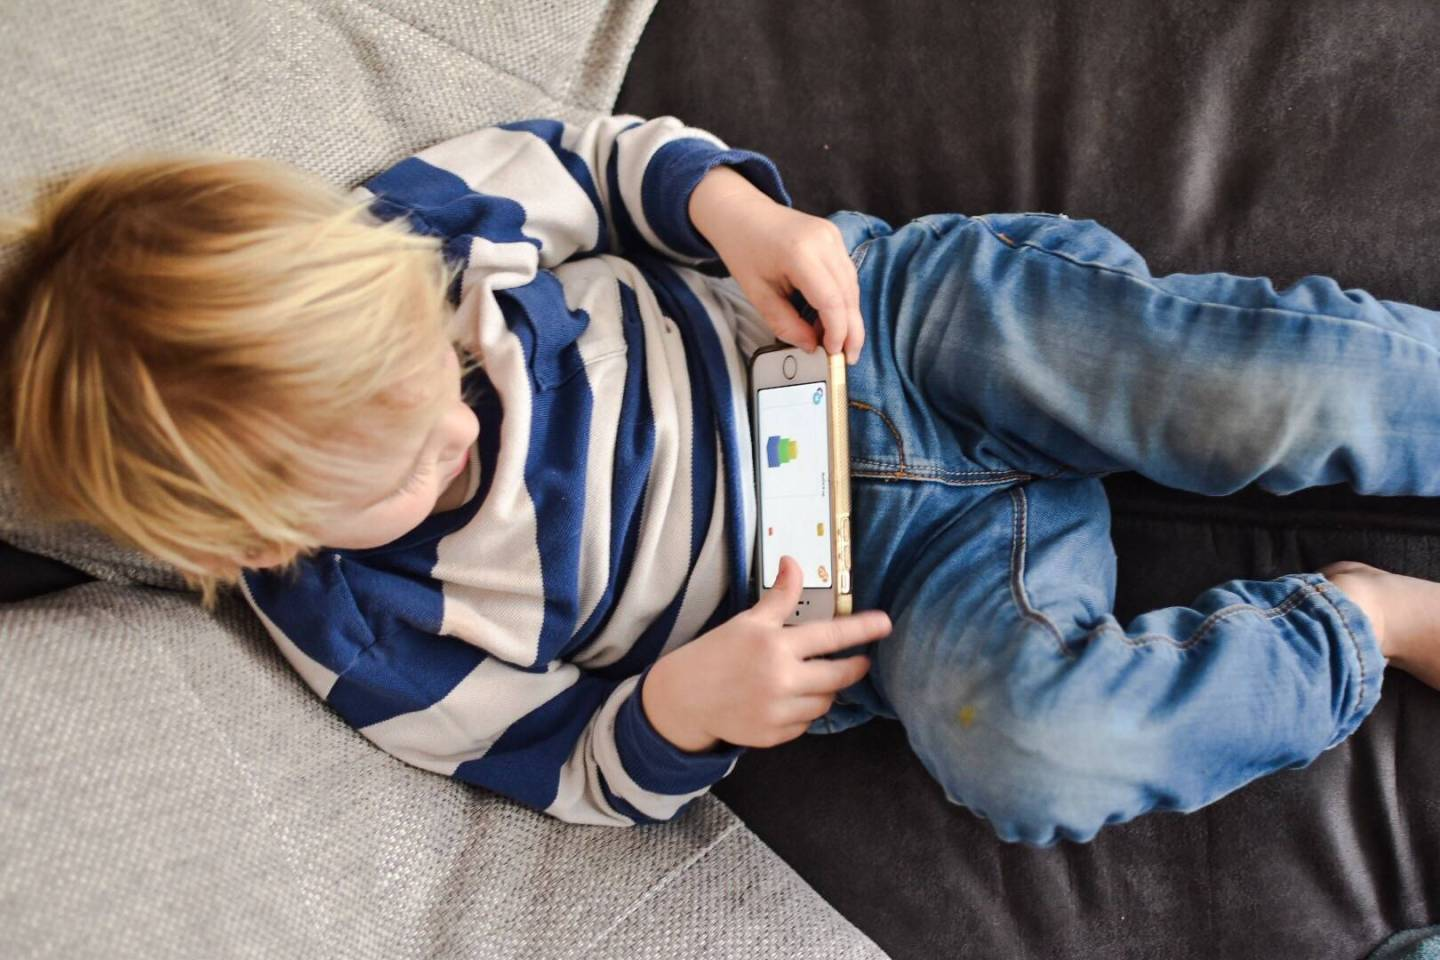 Tips on managing the amount of time children spend online